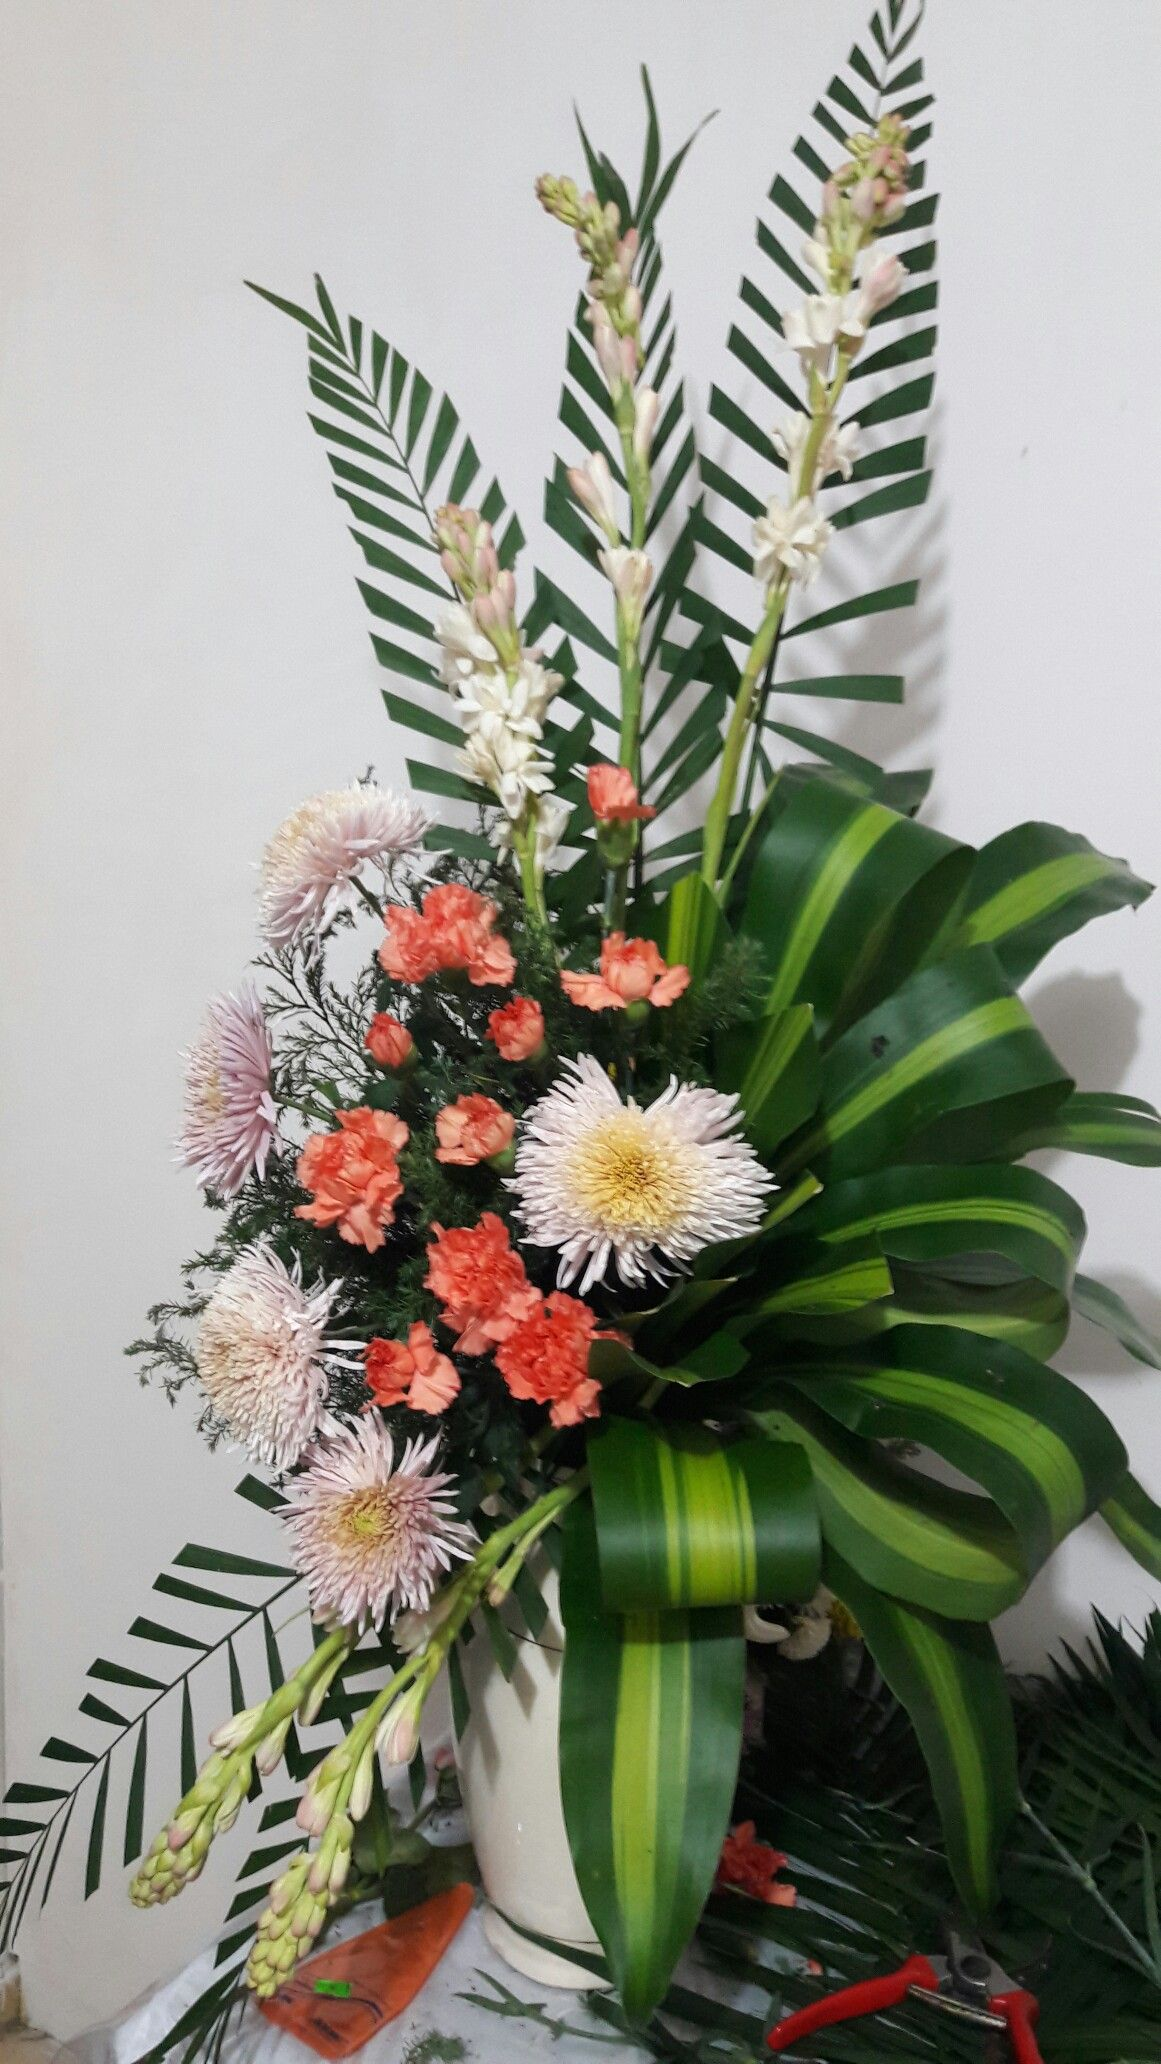 Pin by thomas bolton on floral pinterest flower arrangements pin by thomas bolton on floral pinterest flower arrangements floral arrangement and floral izmirmasajfo